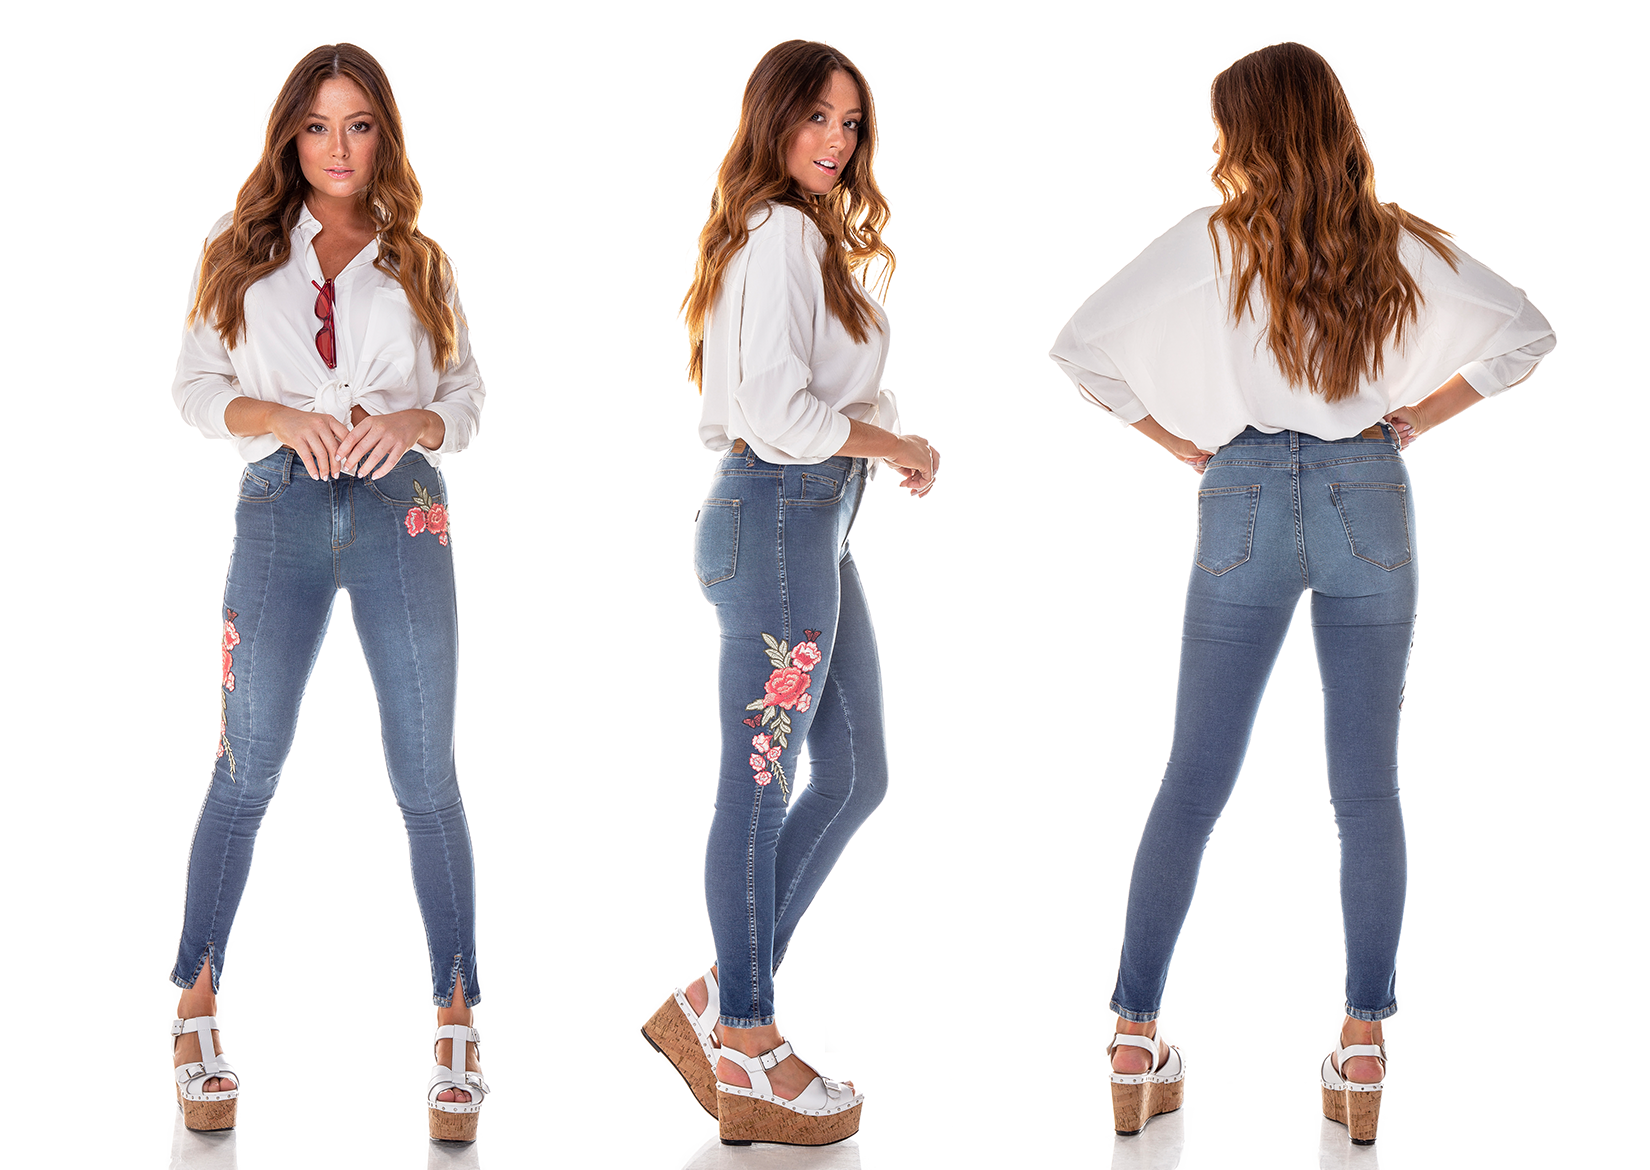 dz2704 calca skinny gigarrete media bordado denim zero tripla